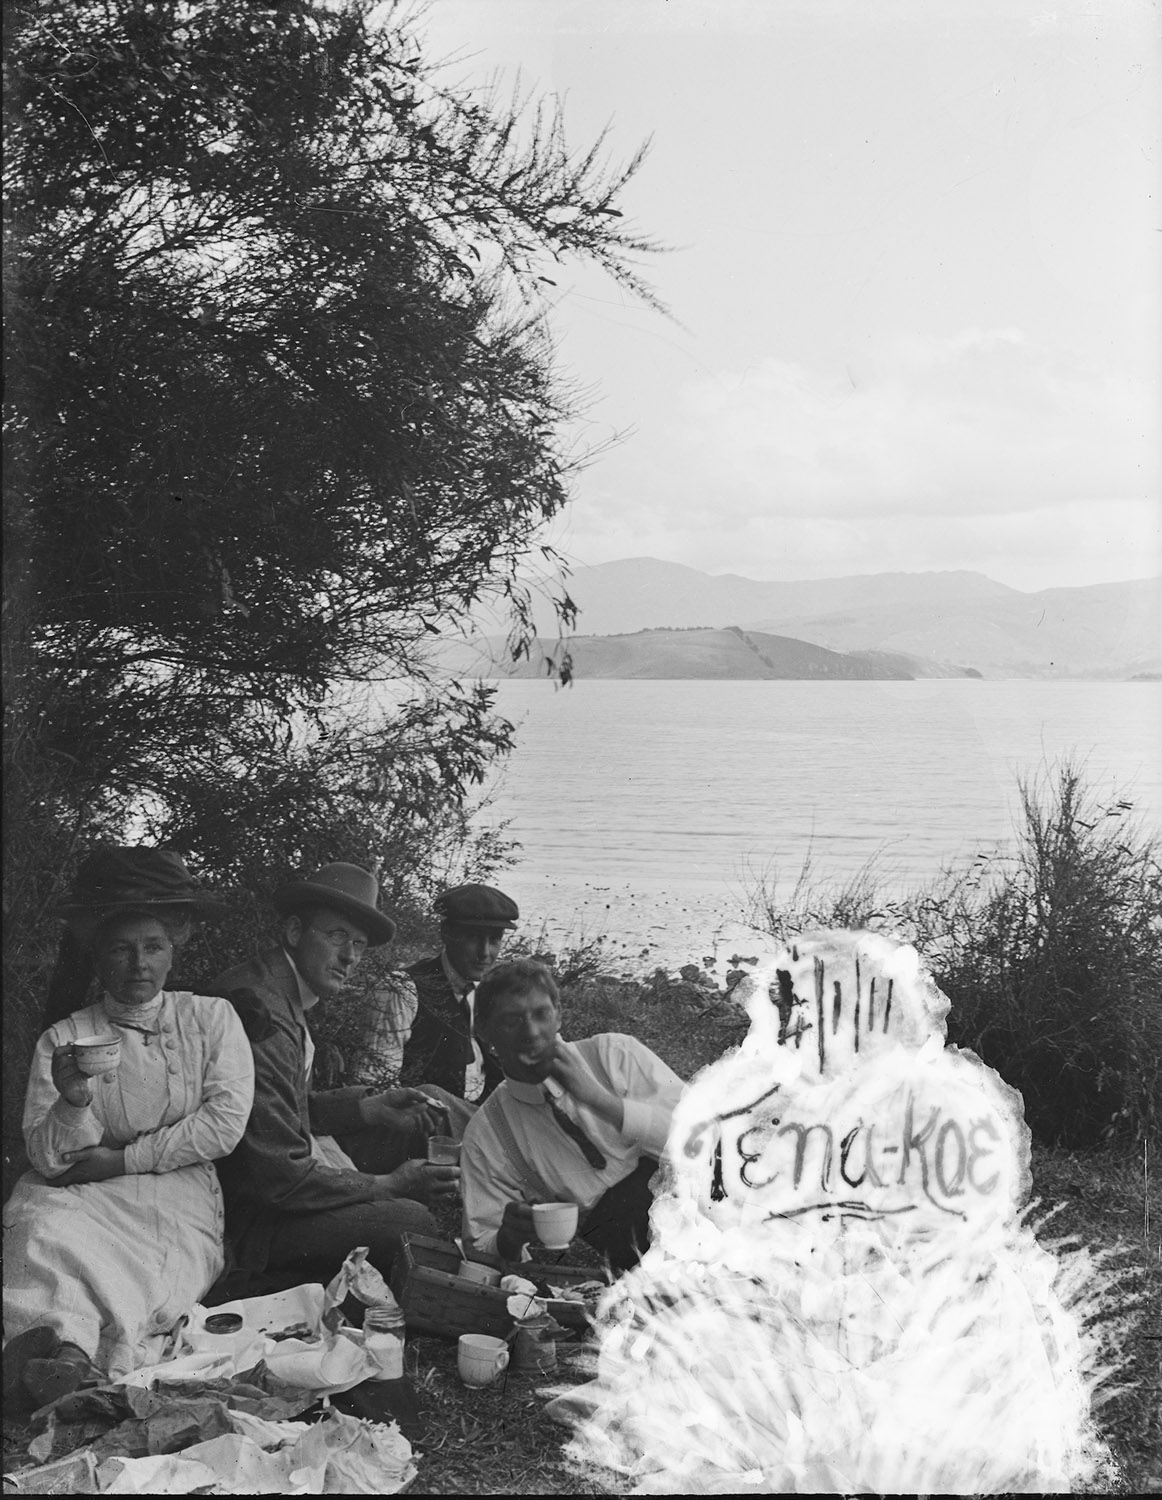 Picnic by the water, 4th January 1911. Suspect this is Lyttelton Harbour from Governor's Bay, South Island, New Zealand. Lemuel Lyes Collection.